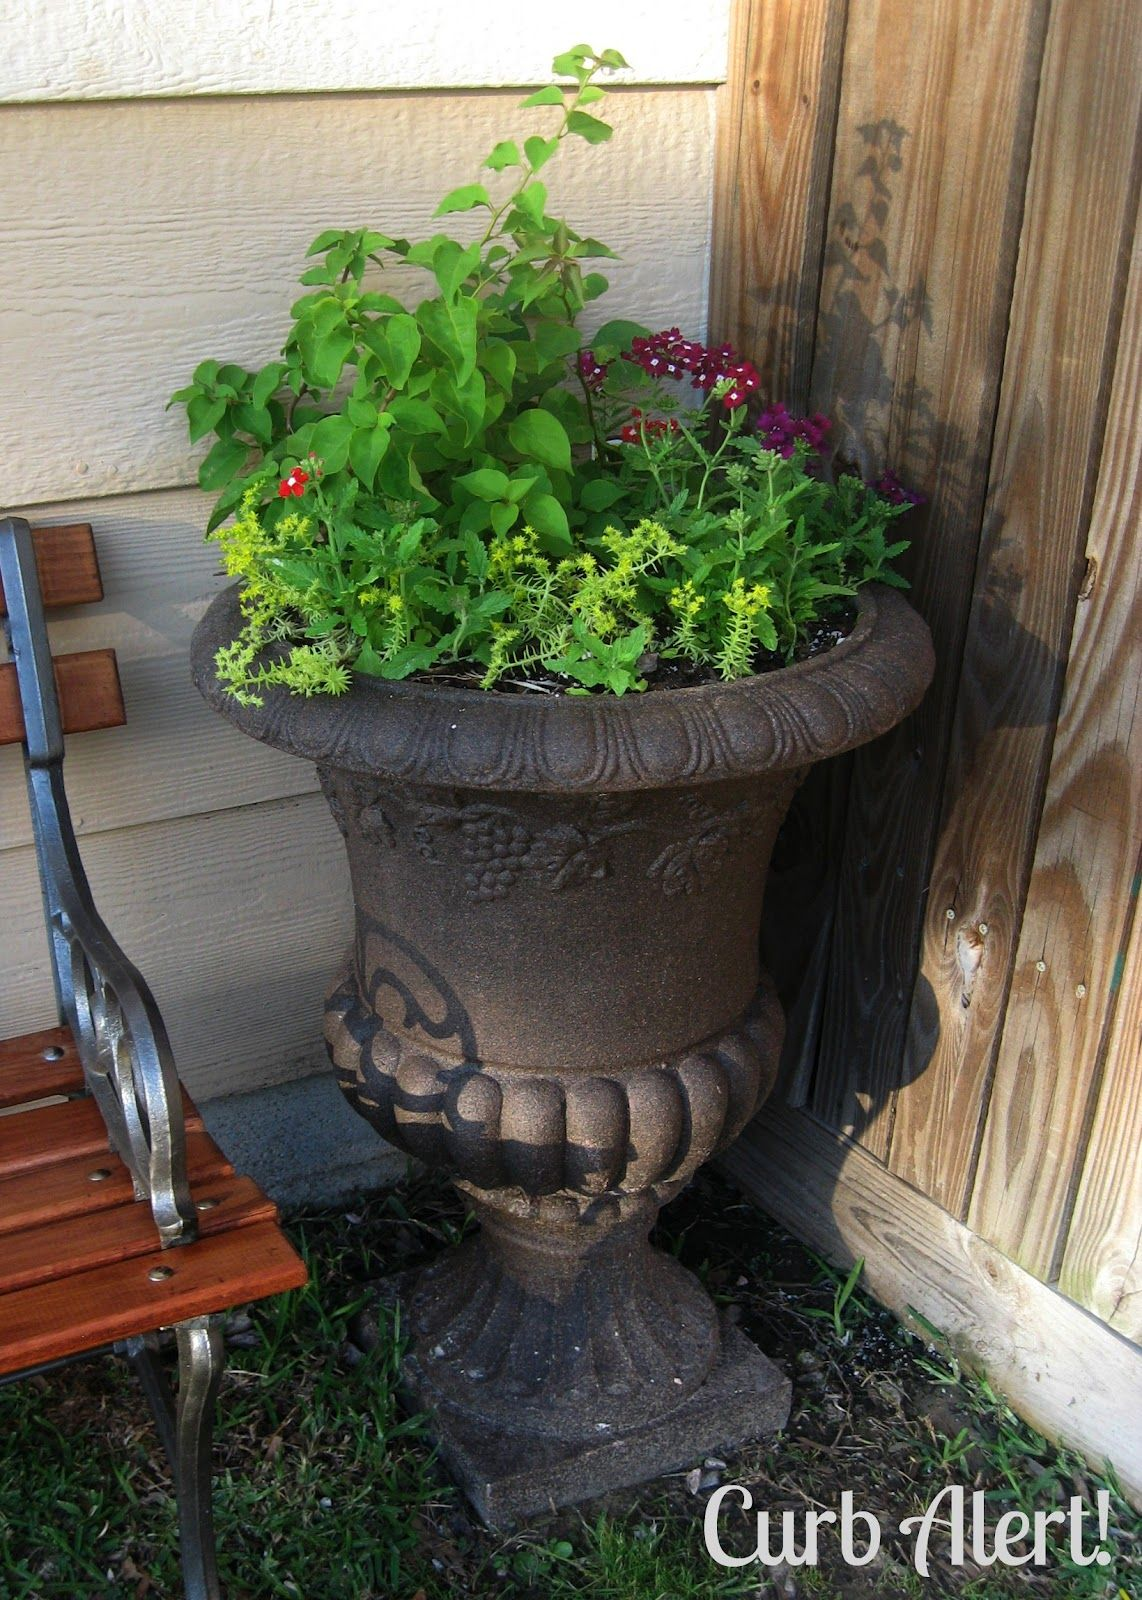 Concrete Garden Planters Stone Spray Paint Way Cool Curb Alert Outdoor